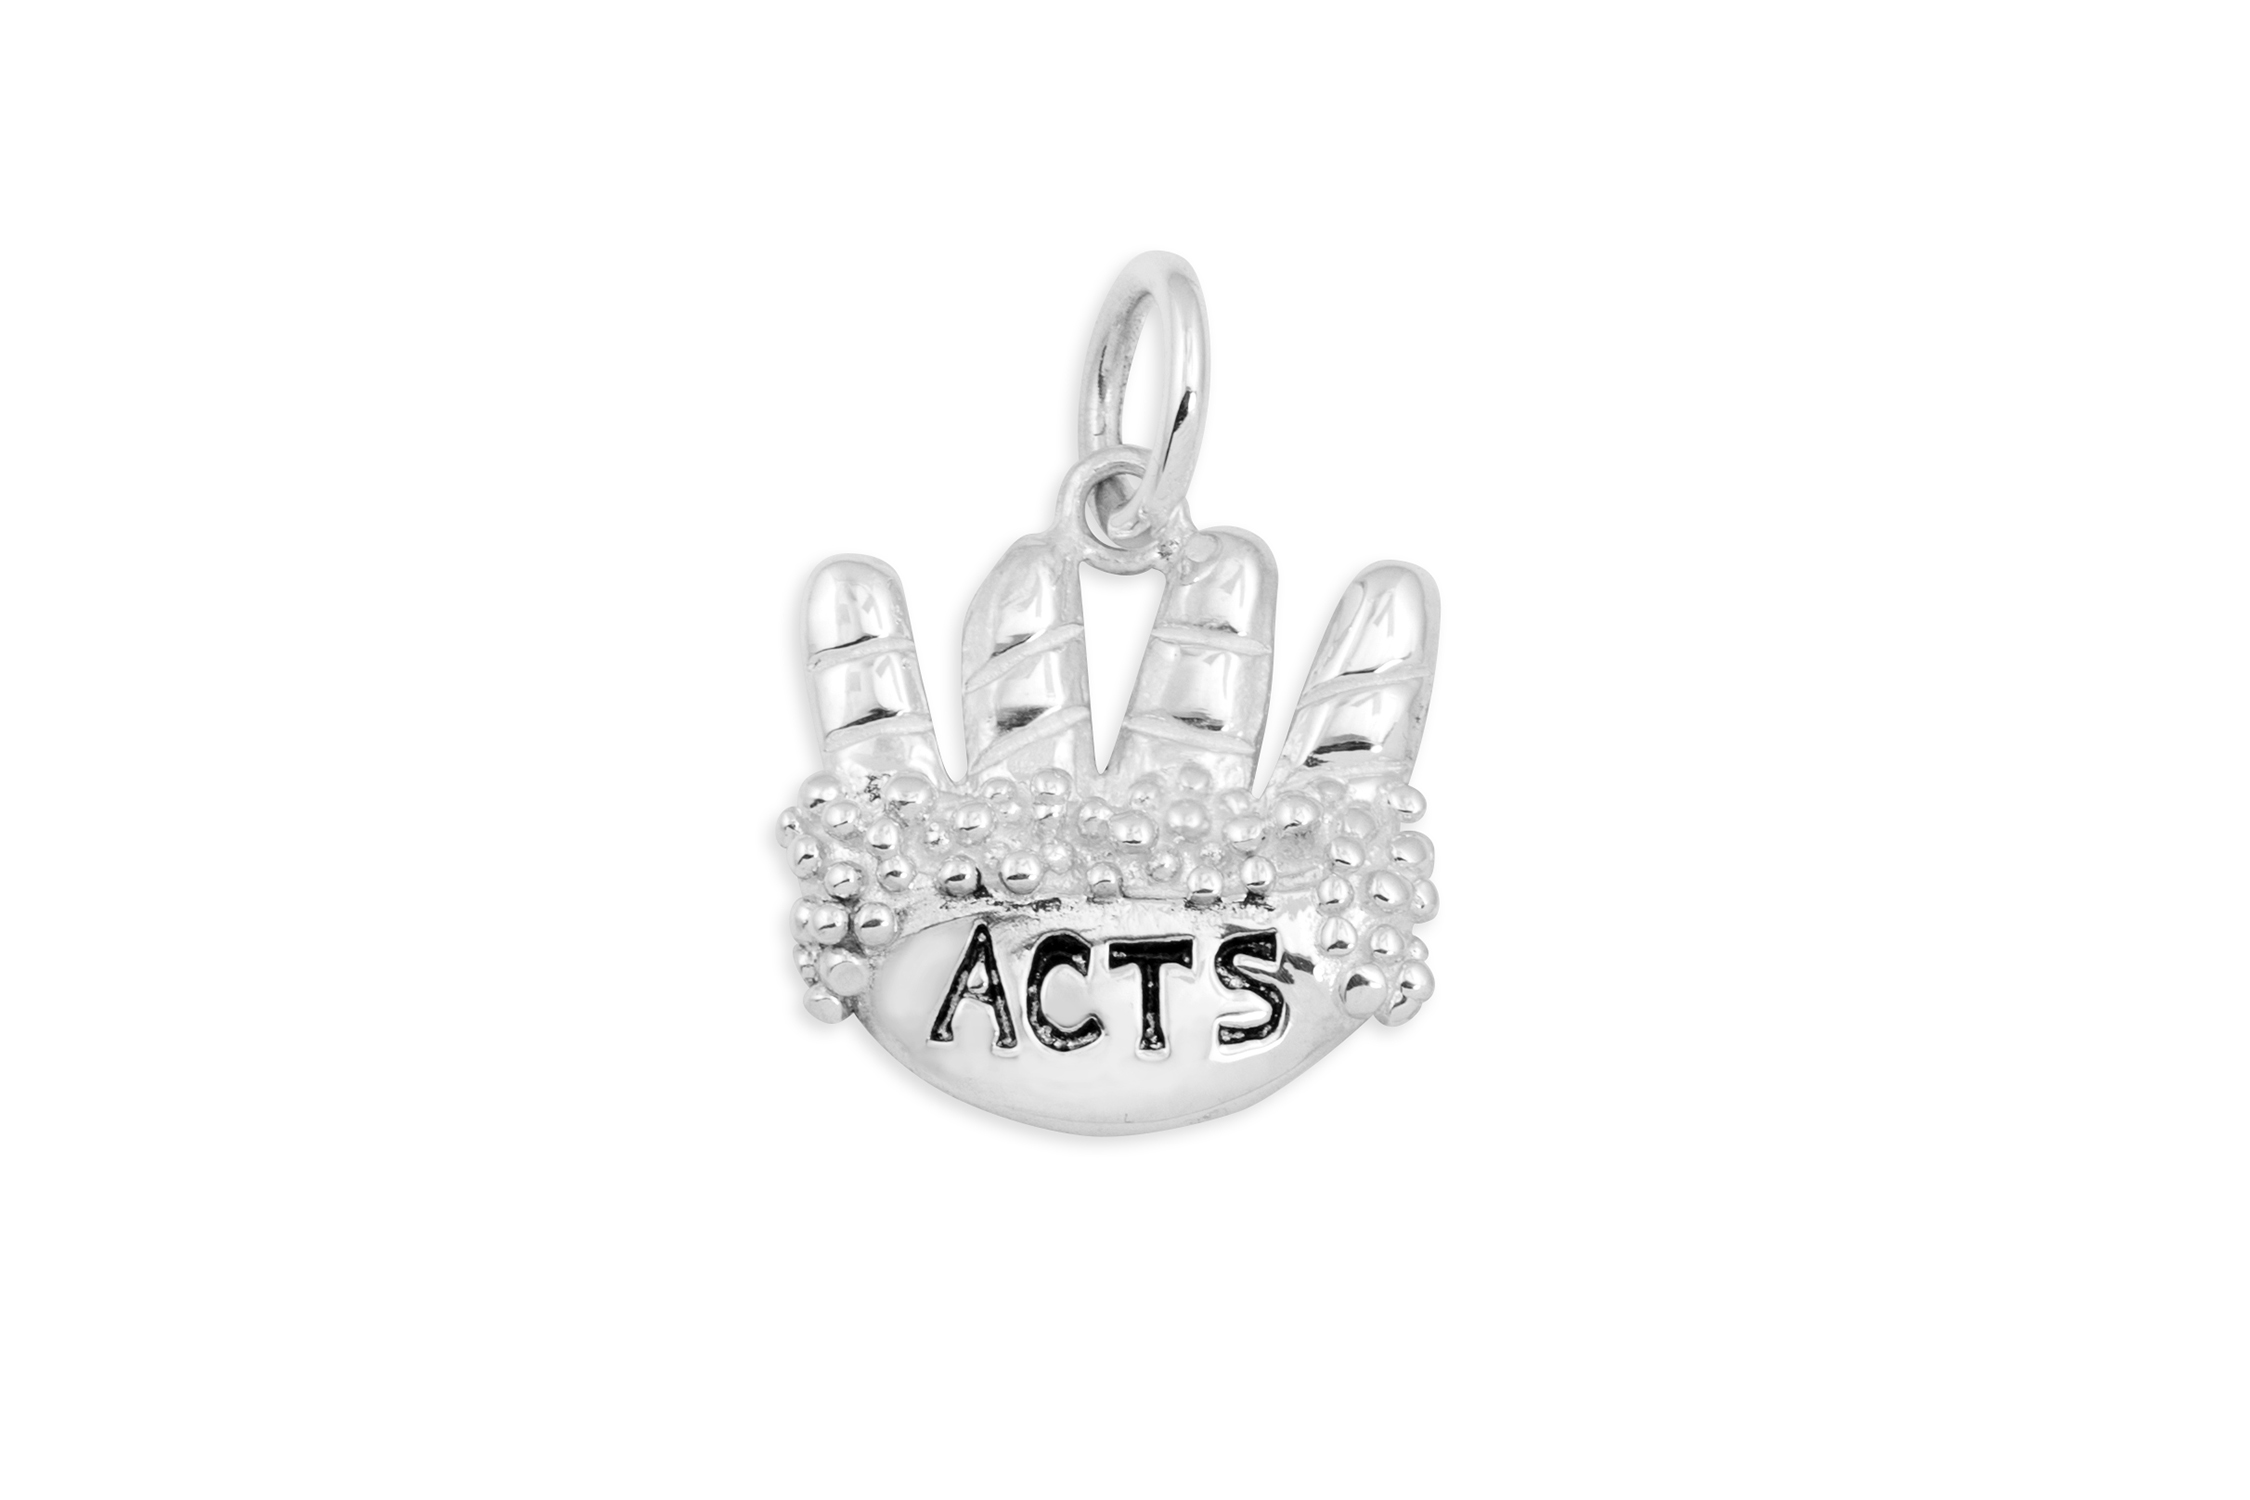 ACTS Jewelry — Alonso Jewelry Design